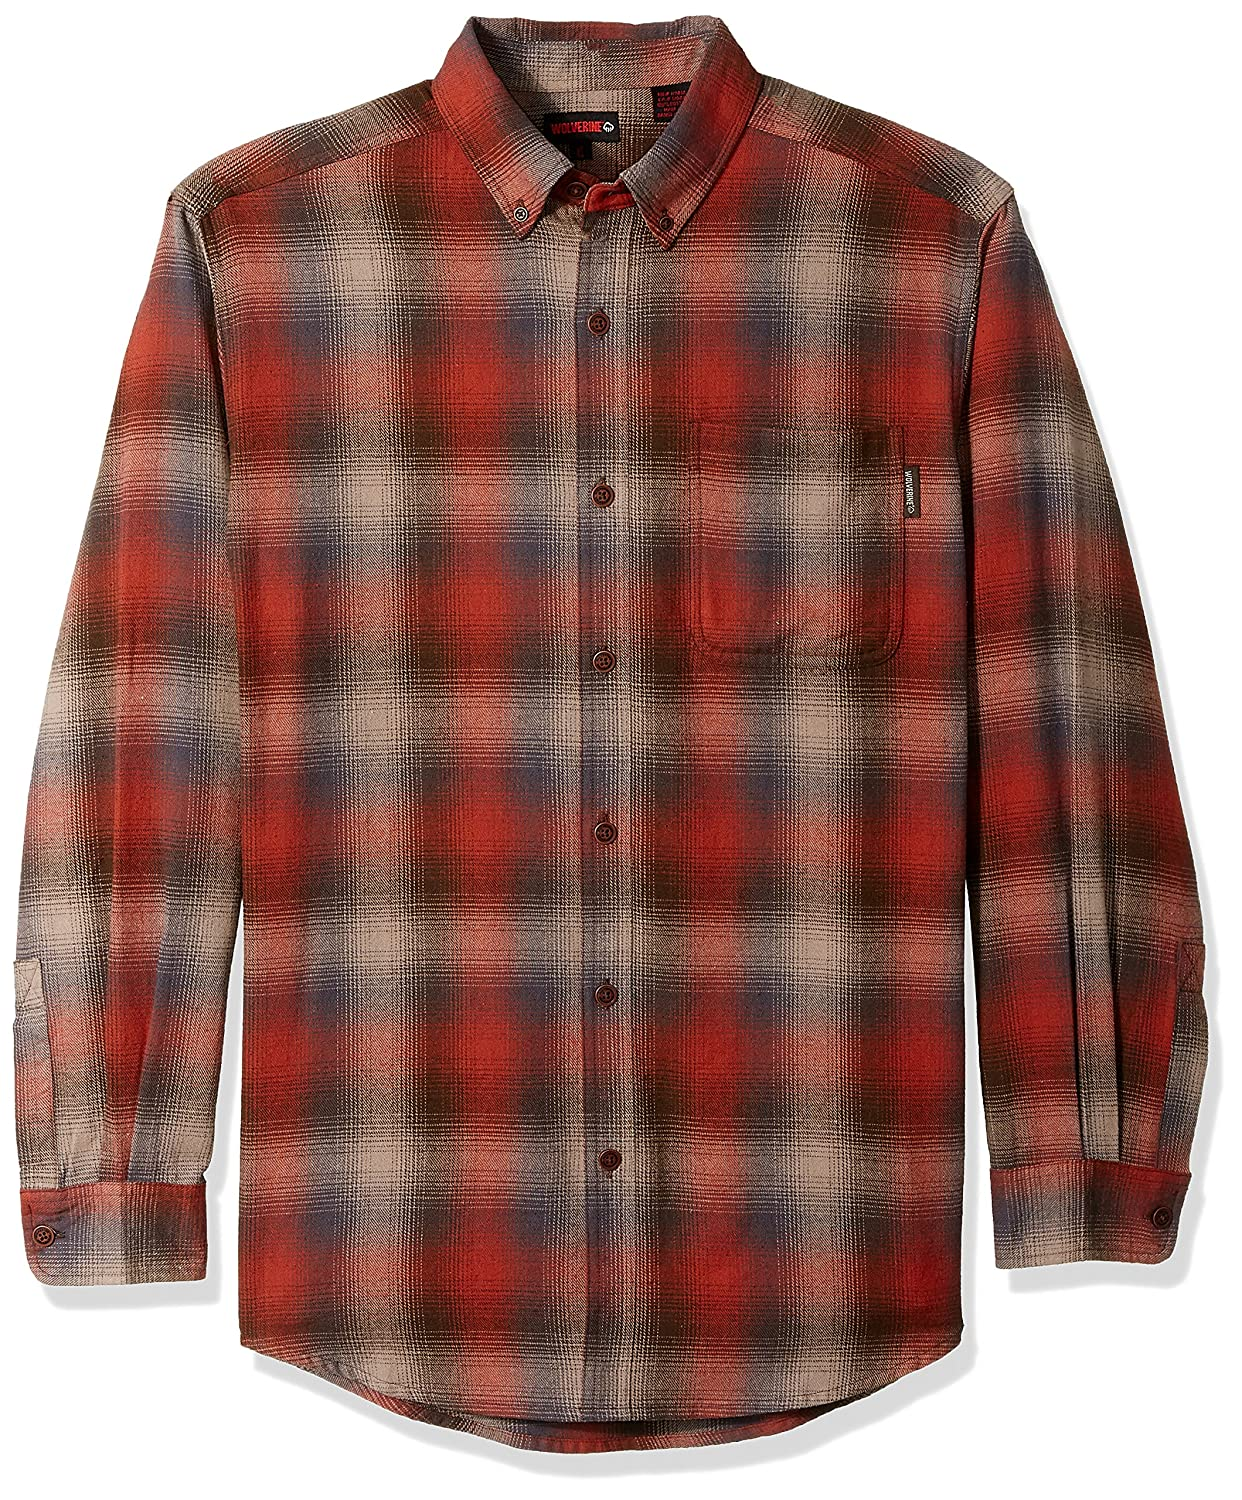 Wolverine SHIRT メンズ B072W87351 Large Tall|Cinnamon Plaid Cinnamon Plaid Large Tall